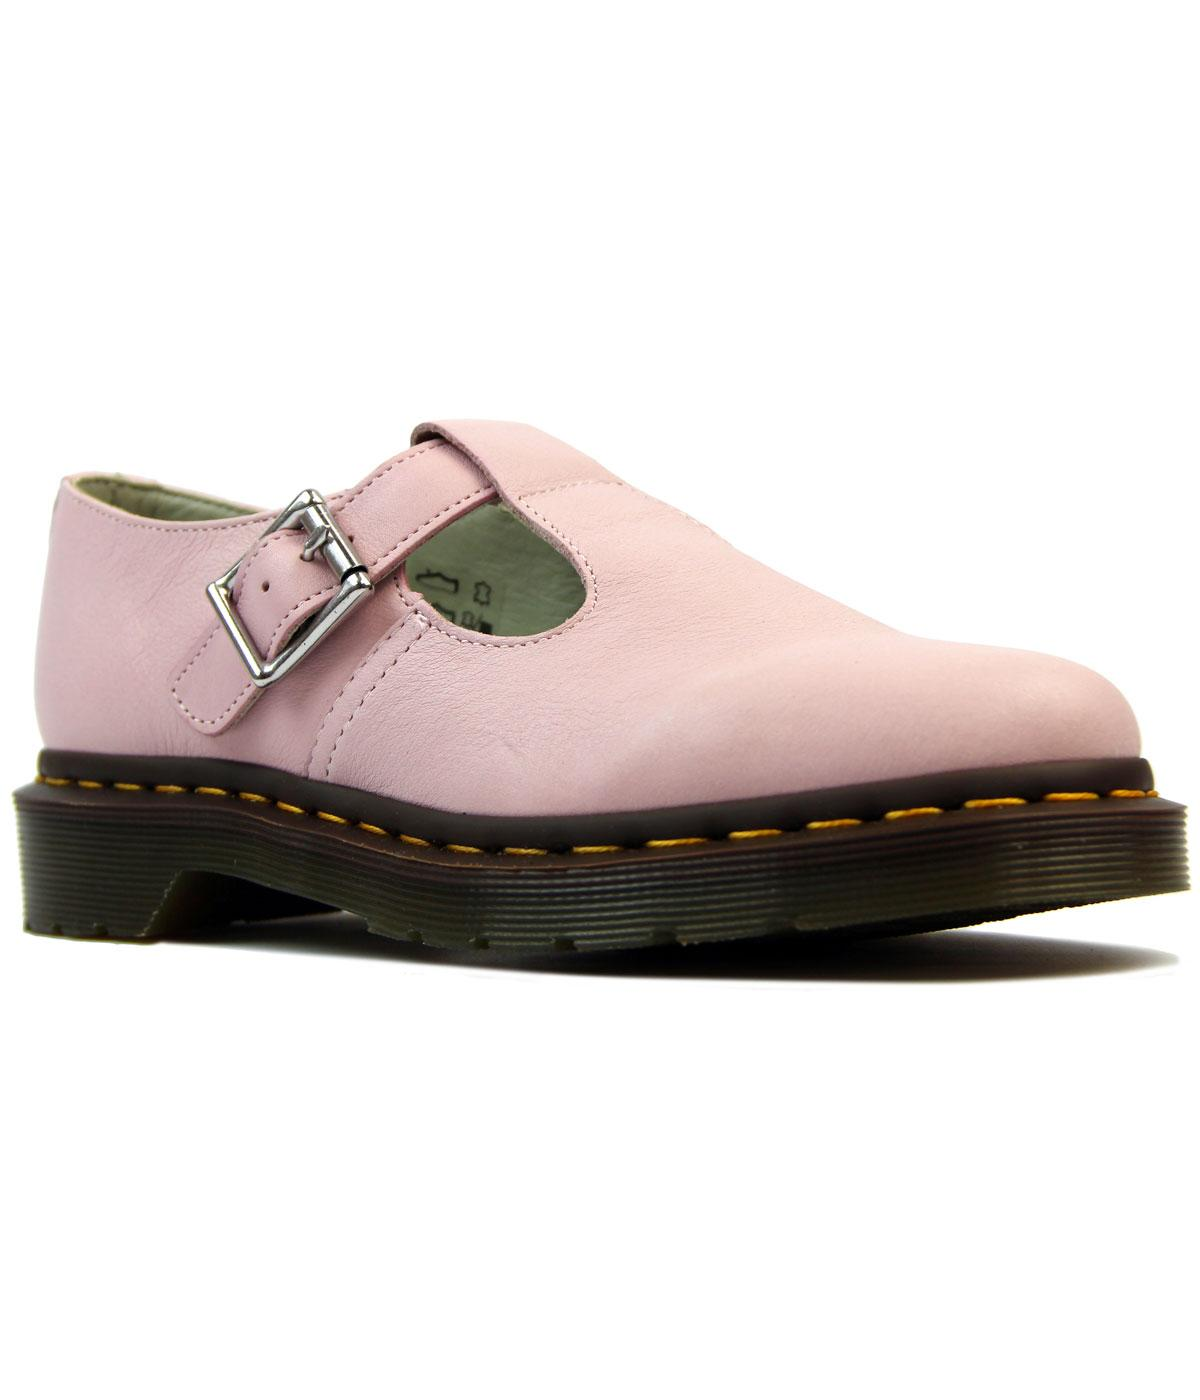 Polley DR MARTENS Retro 1960s T-Bar Buckle Shoes